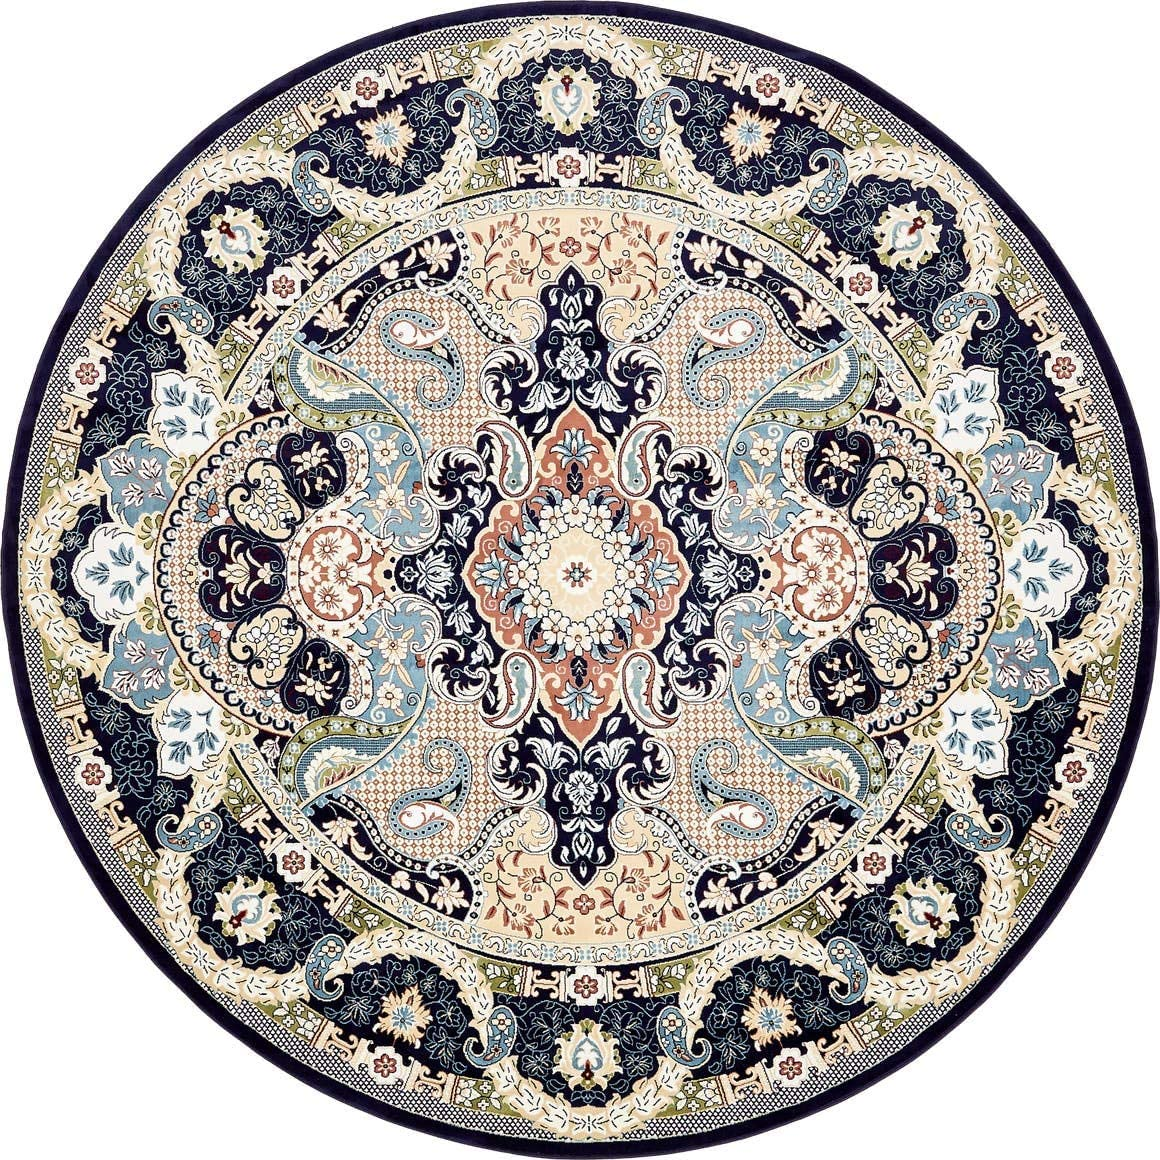 Unique Loom Narenj Collection Classic Traditional Medallion Textured Navy Blue Round Rug 10 0 x 10 0